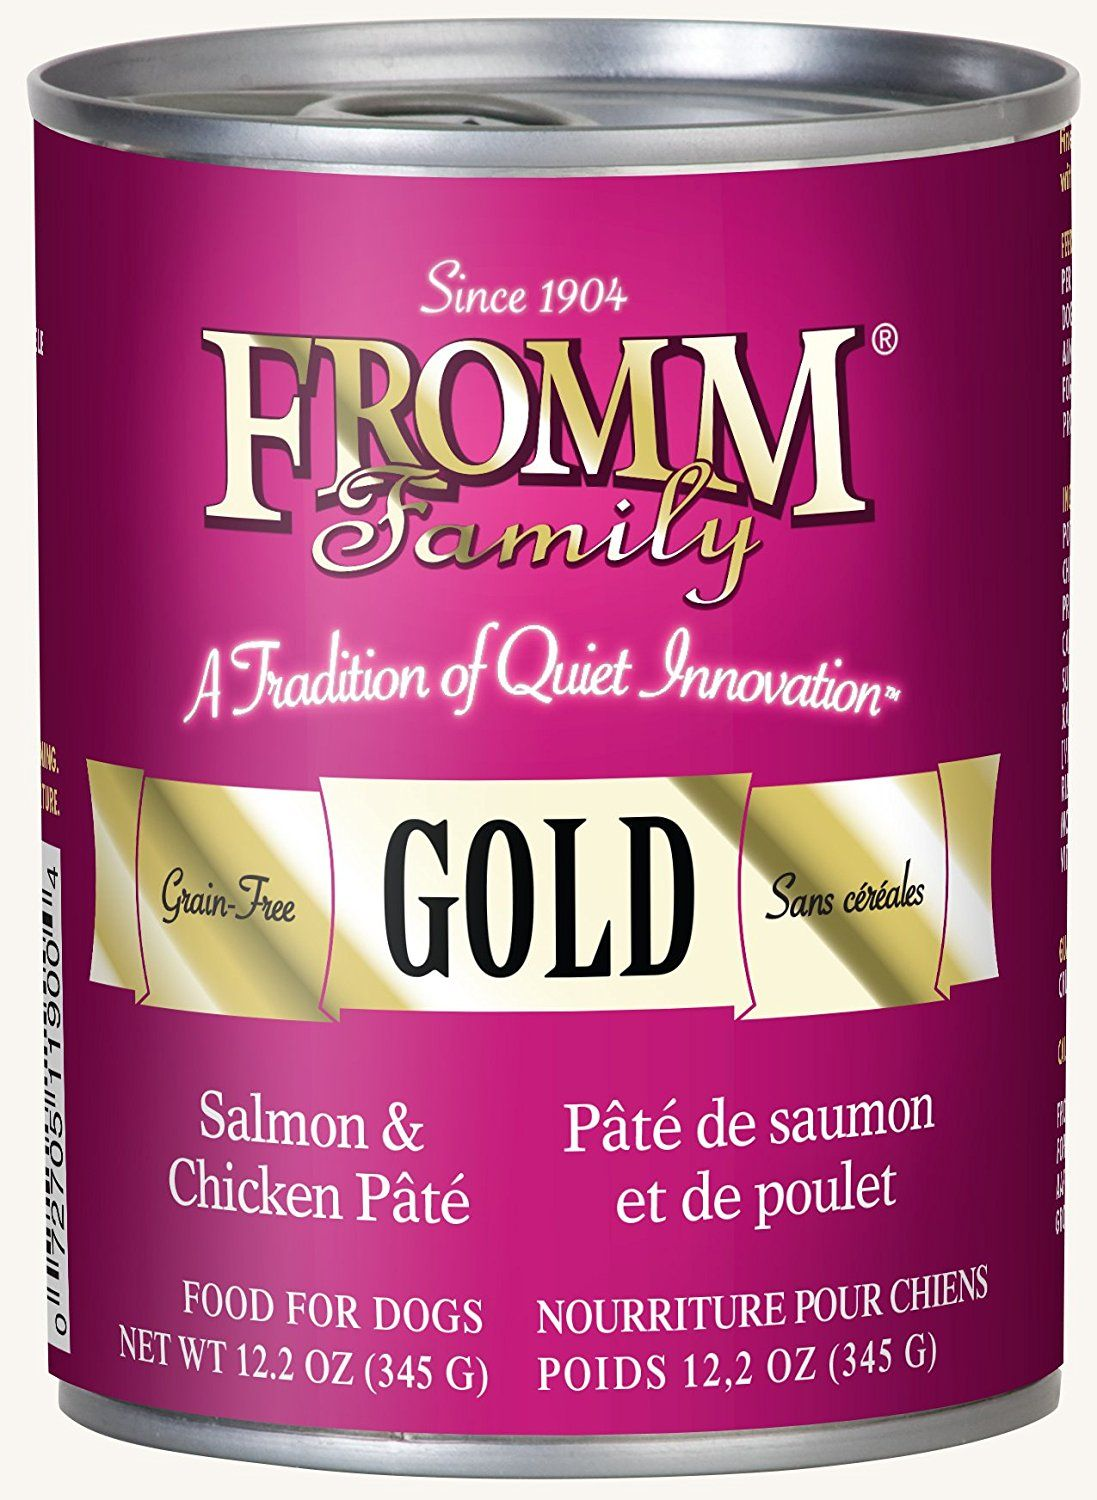 Fromm Gold Salmon and Chicken Pâté 12.2oz / case of 12